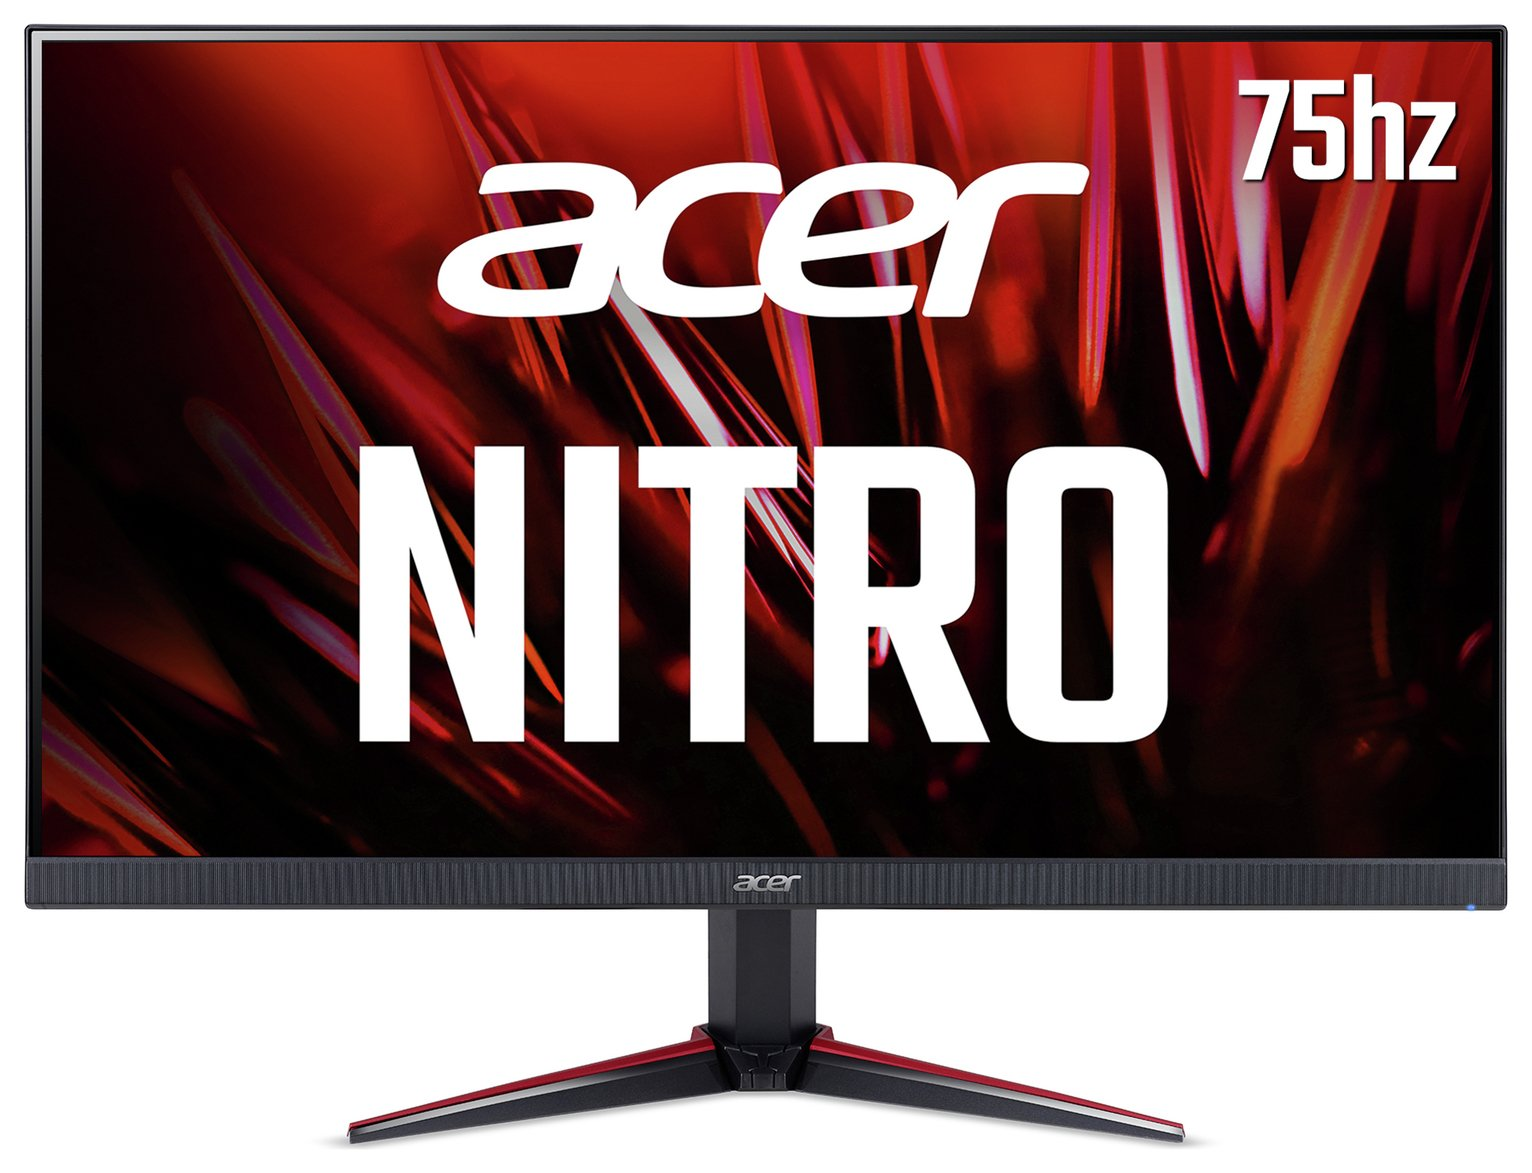 Acer Nitro VGC240 24 Inch FHD Gaming Monitor